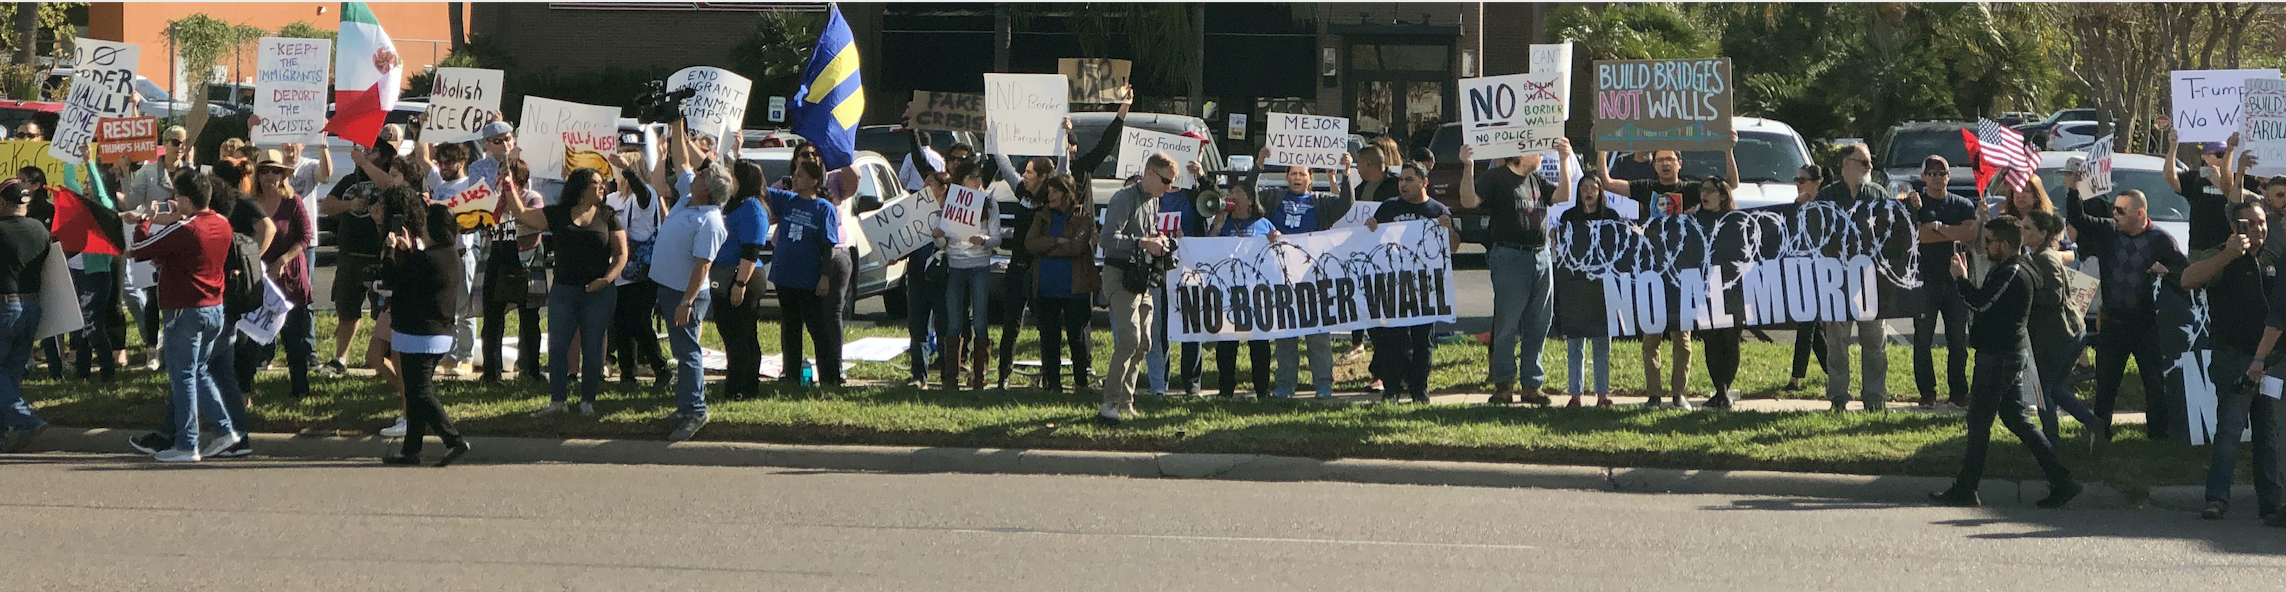 "Photo: A crowd of people stand along a street in the Rio Grande Valley. Behind them is a restaurant and other businesses. They hold signs, one of which says ""No Border Wall."""